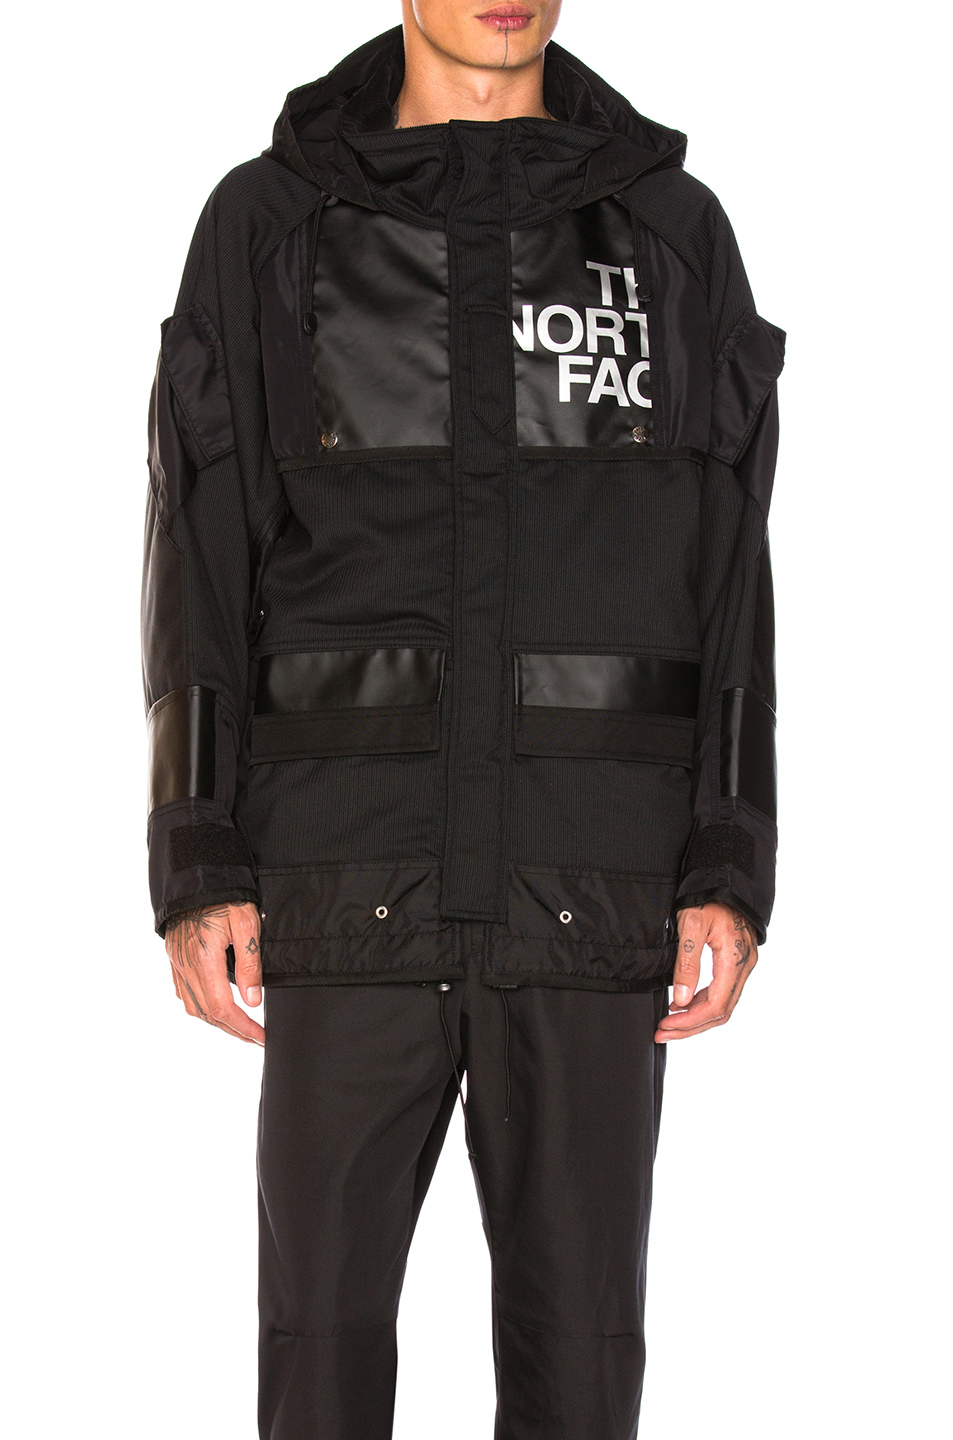 405e9a4fb5678 x The North Face Jacket, Junya Watanabe